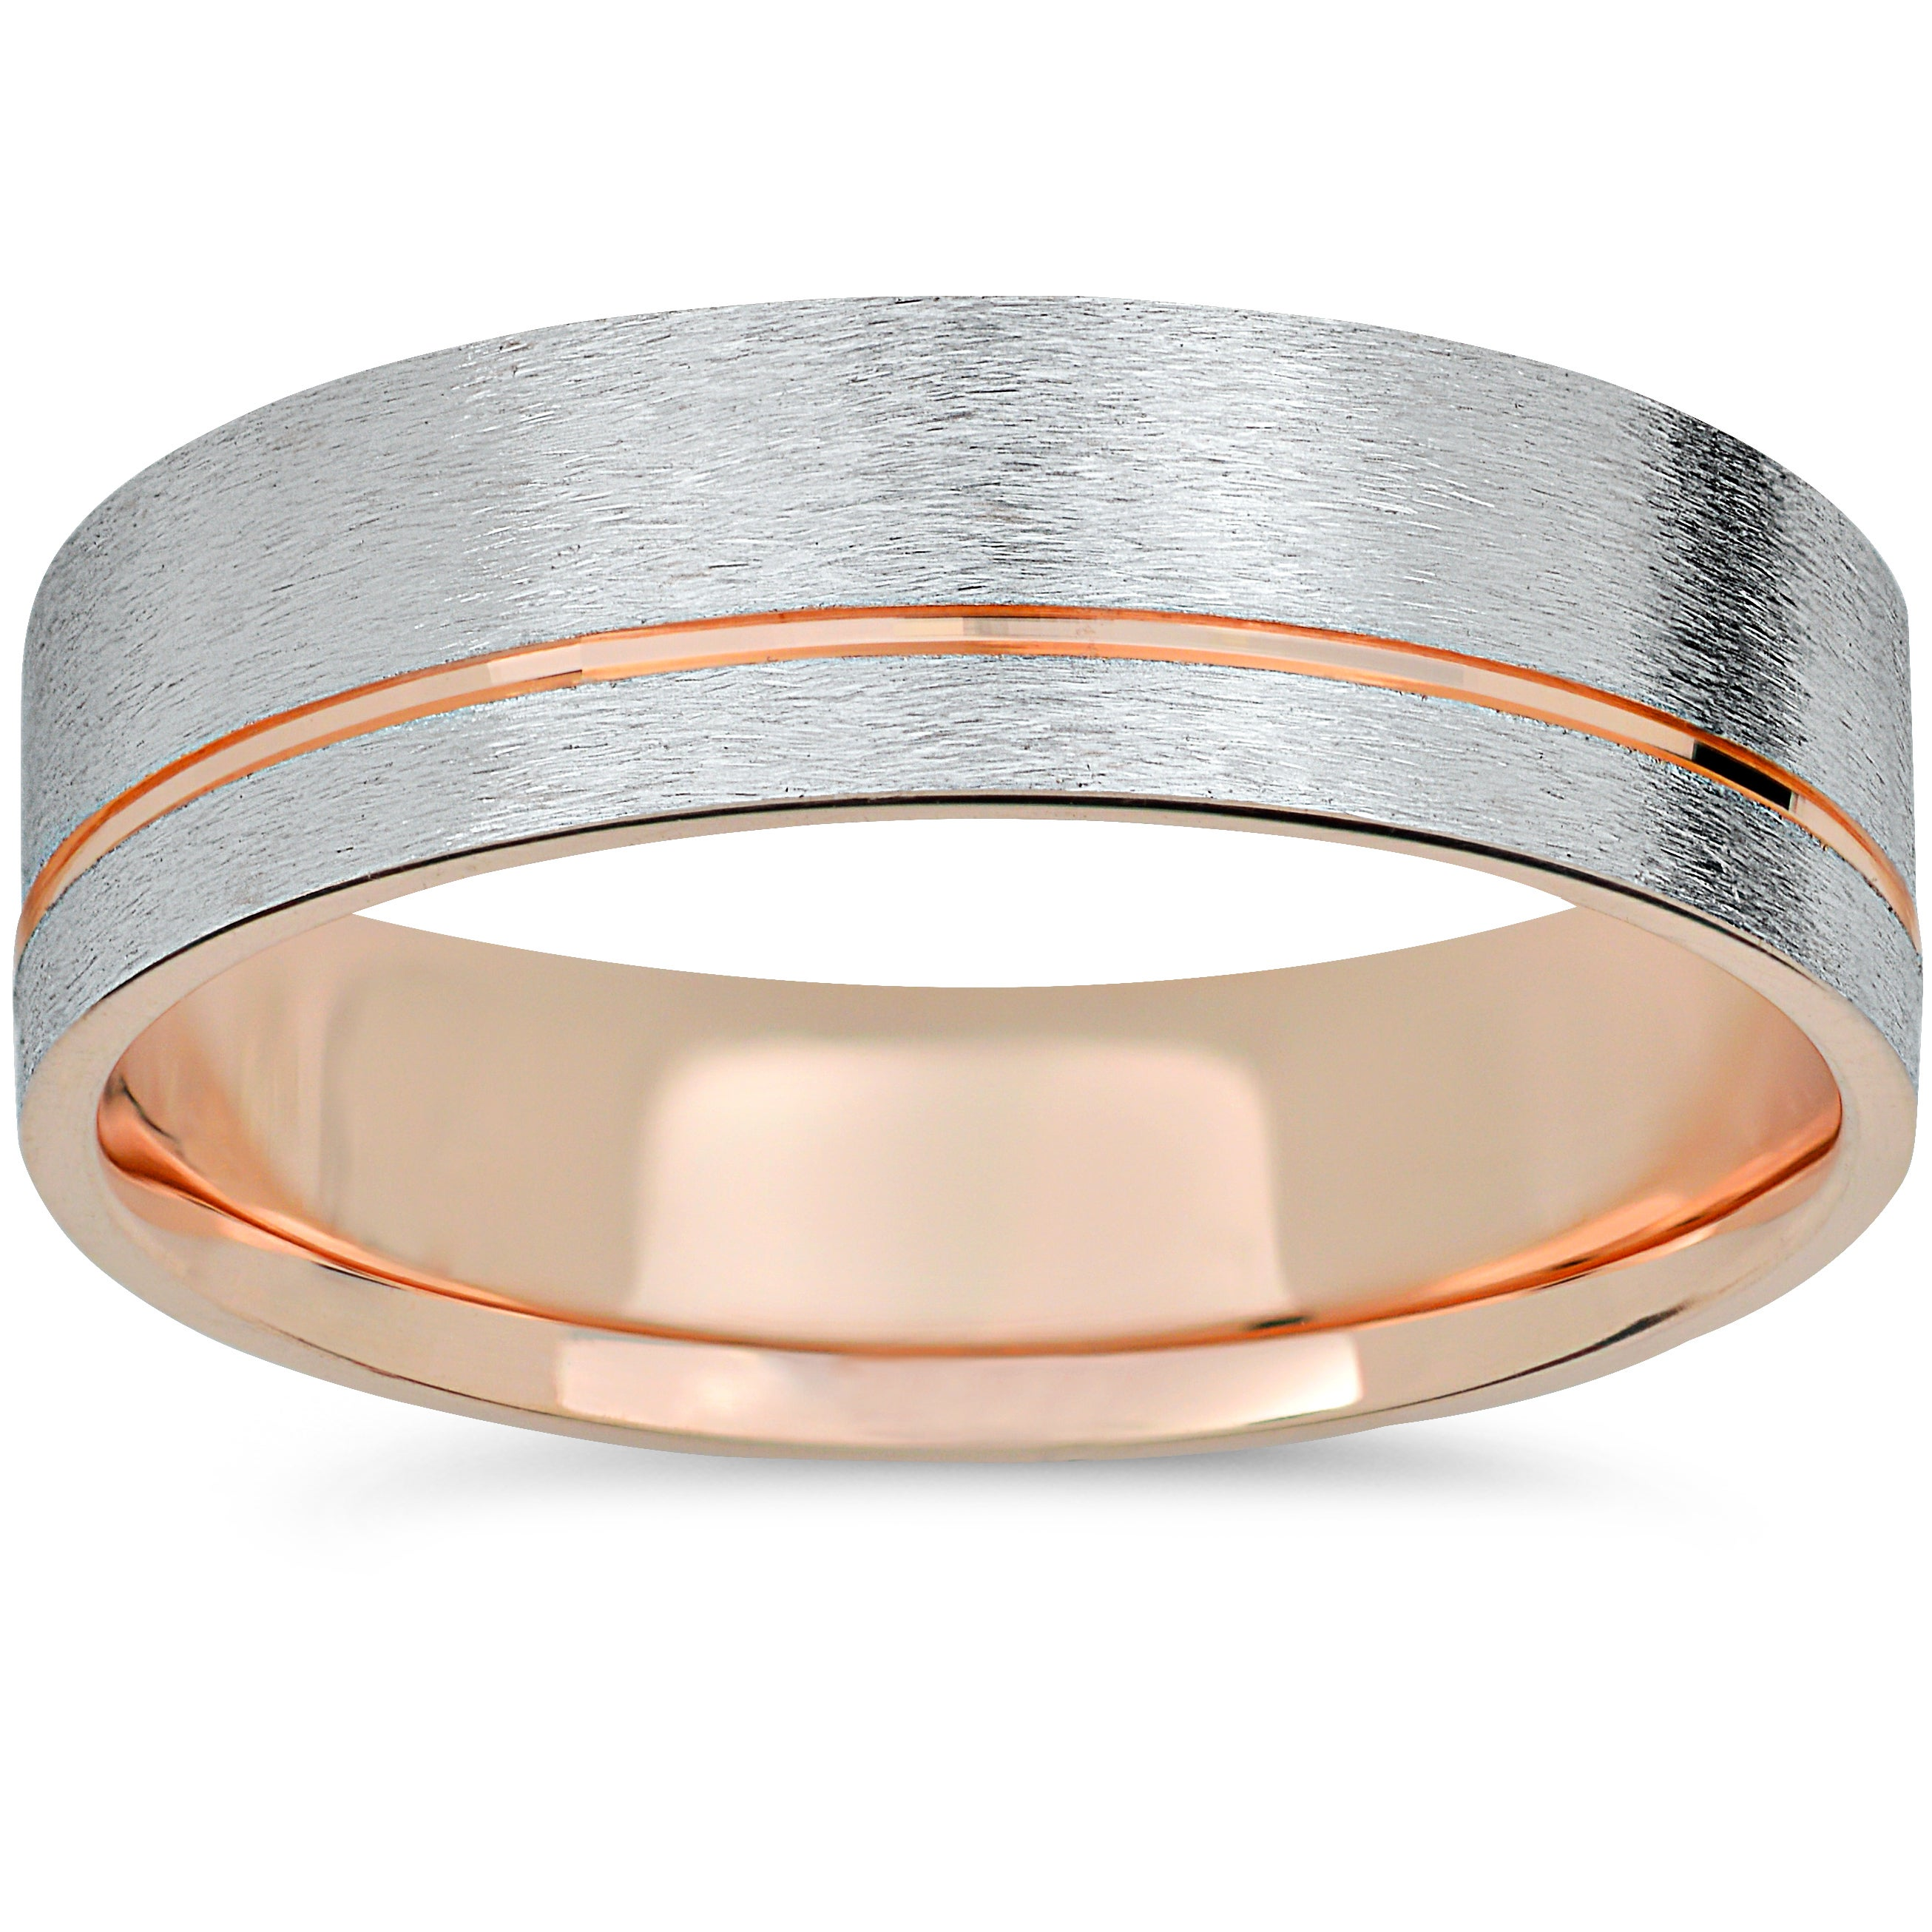 band tone details mens bands toned ringscollection rose wedding two ring and white ori tungsten gold